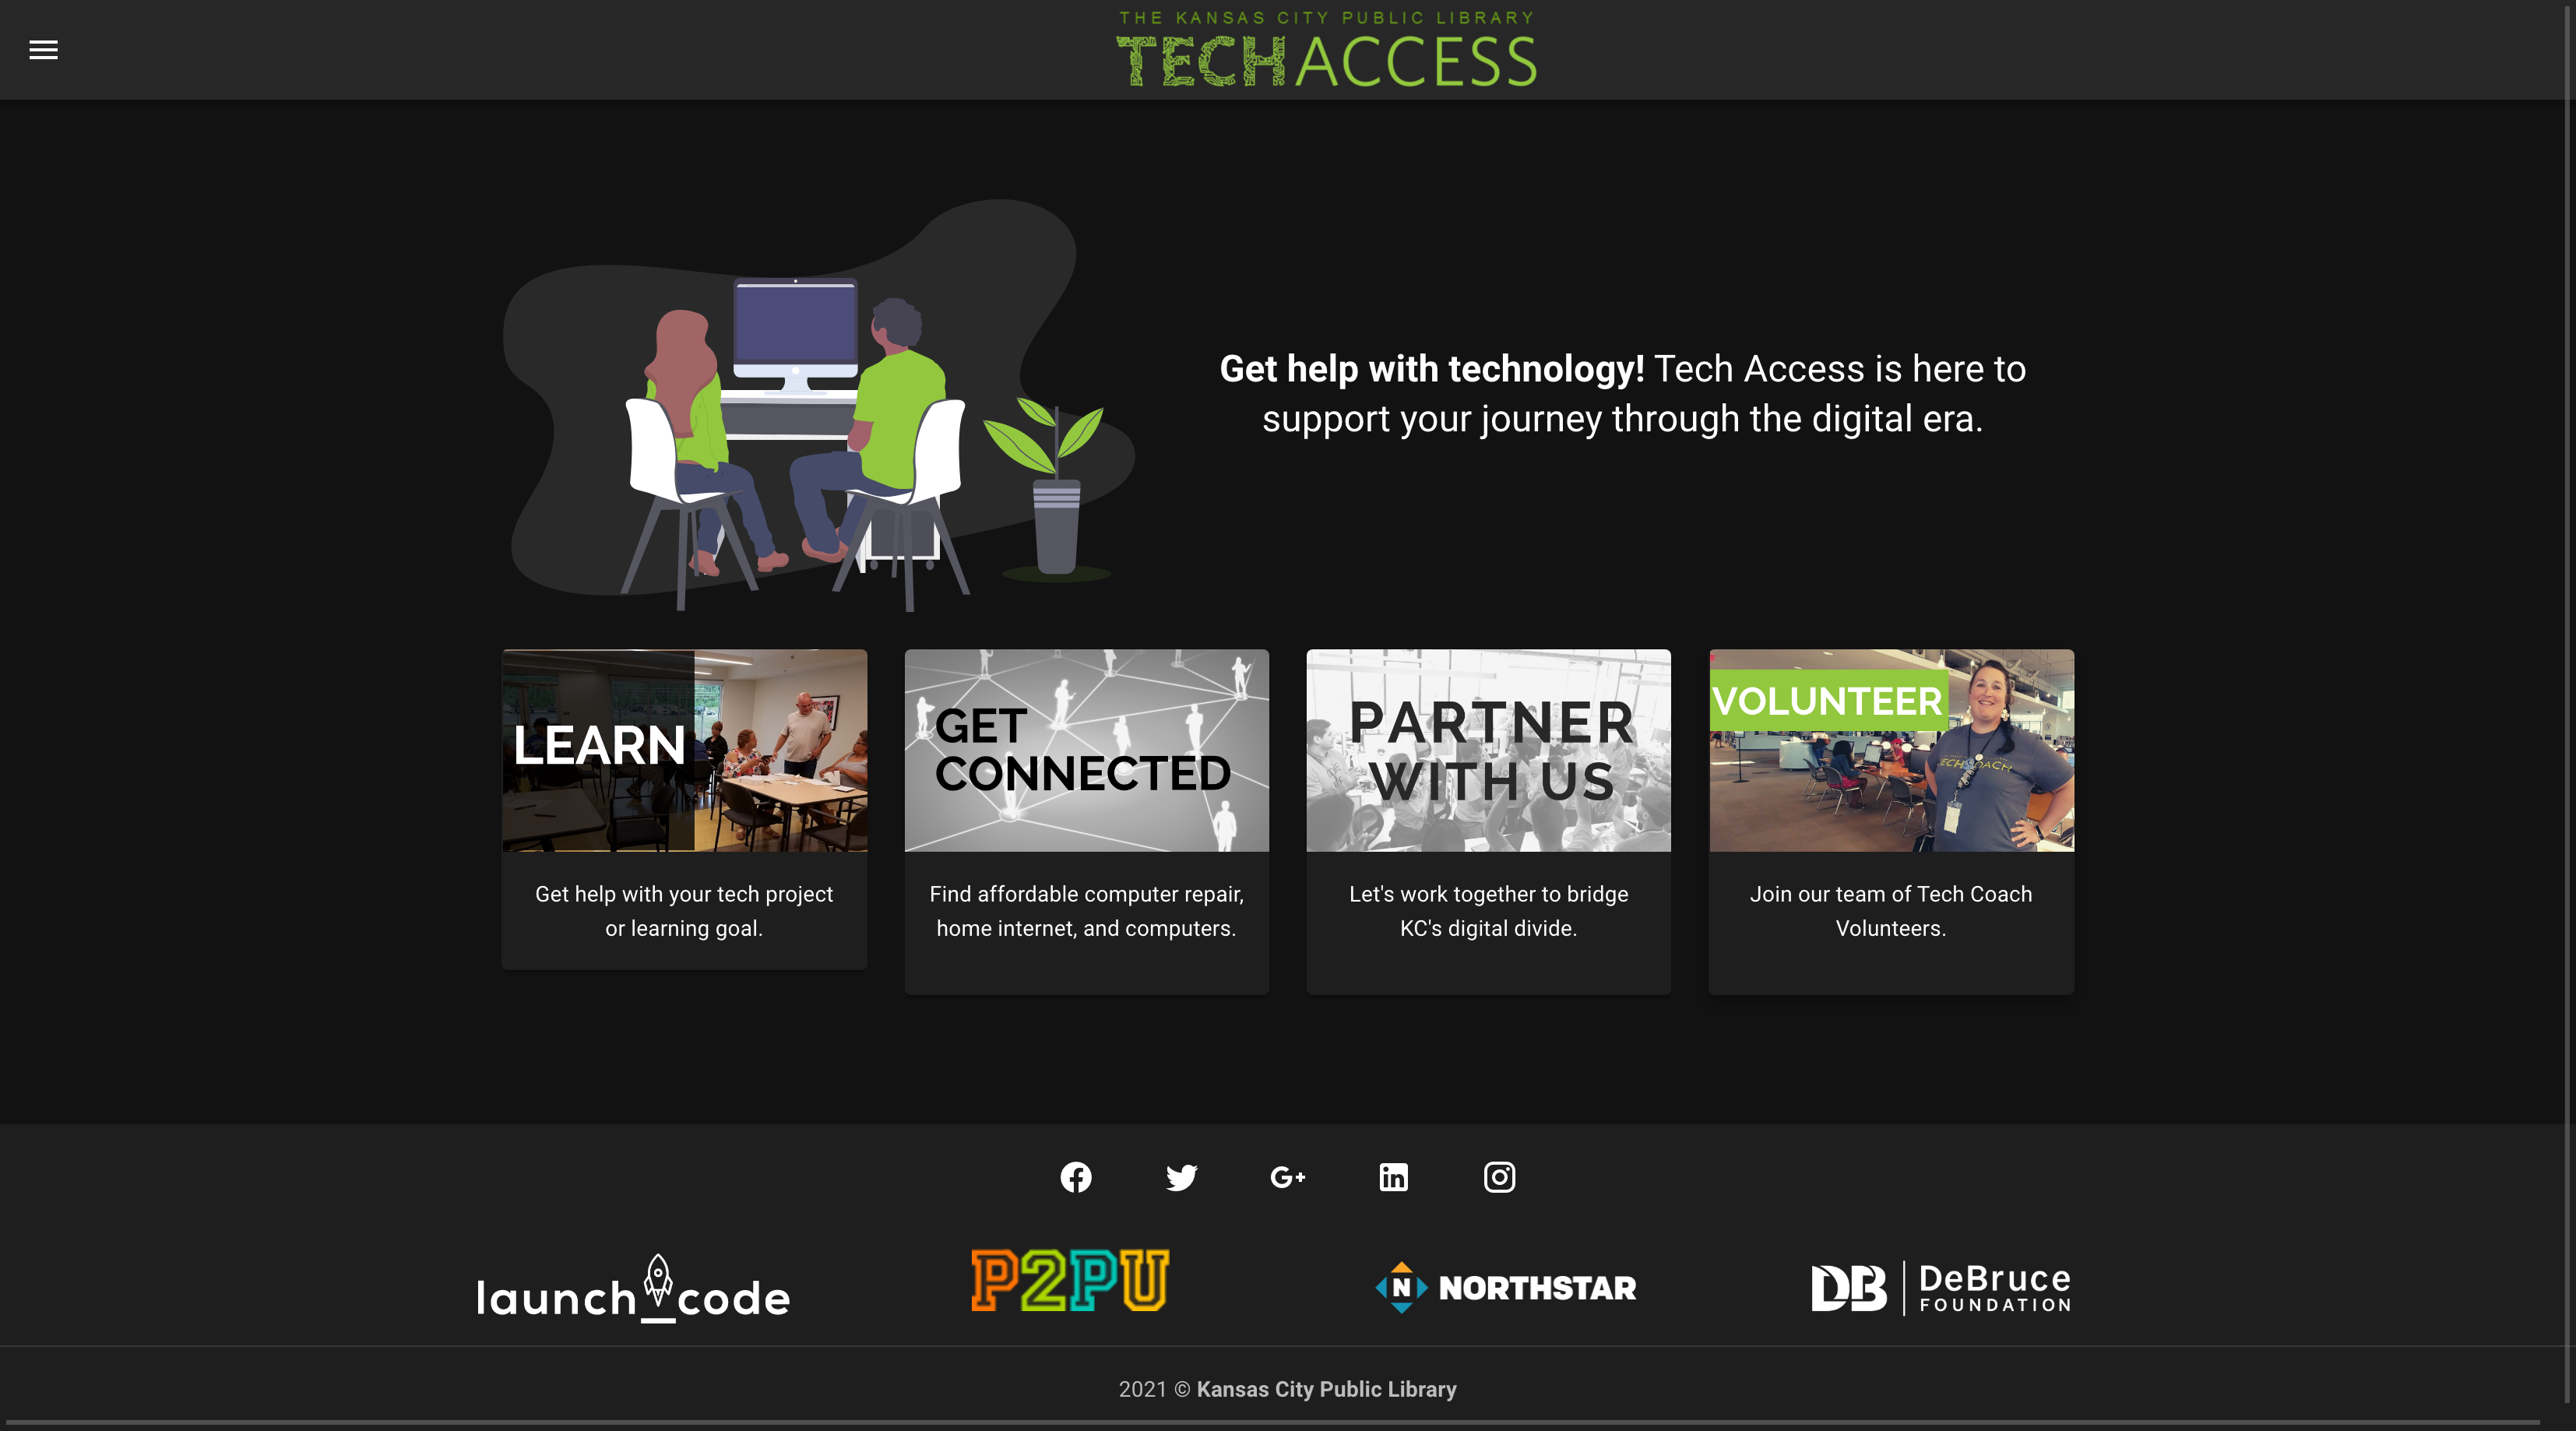 New website for the Tech Access team ran by the Kansas City Public Library